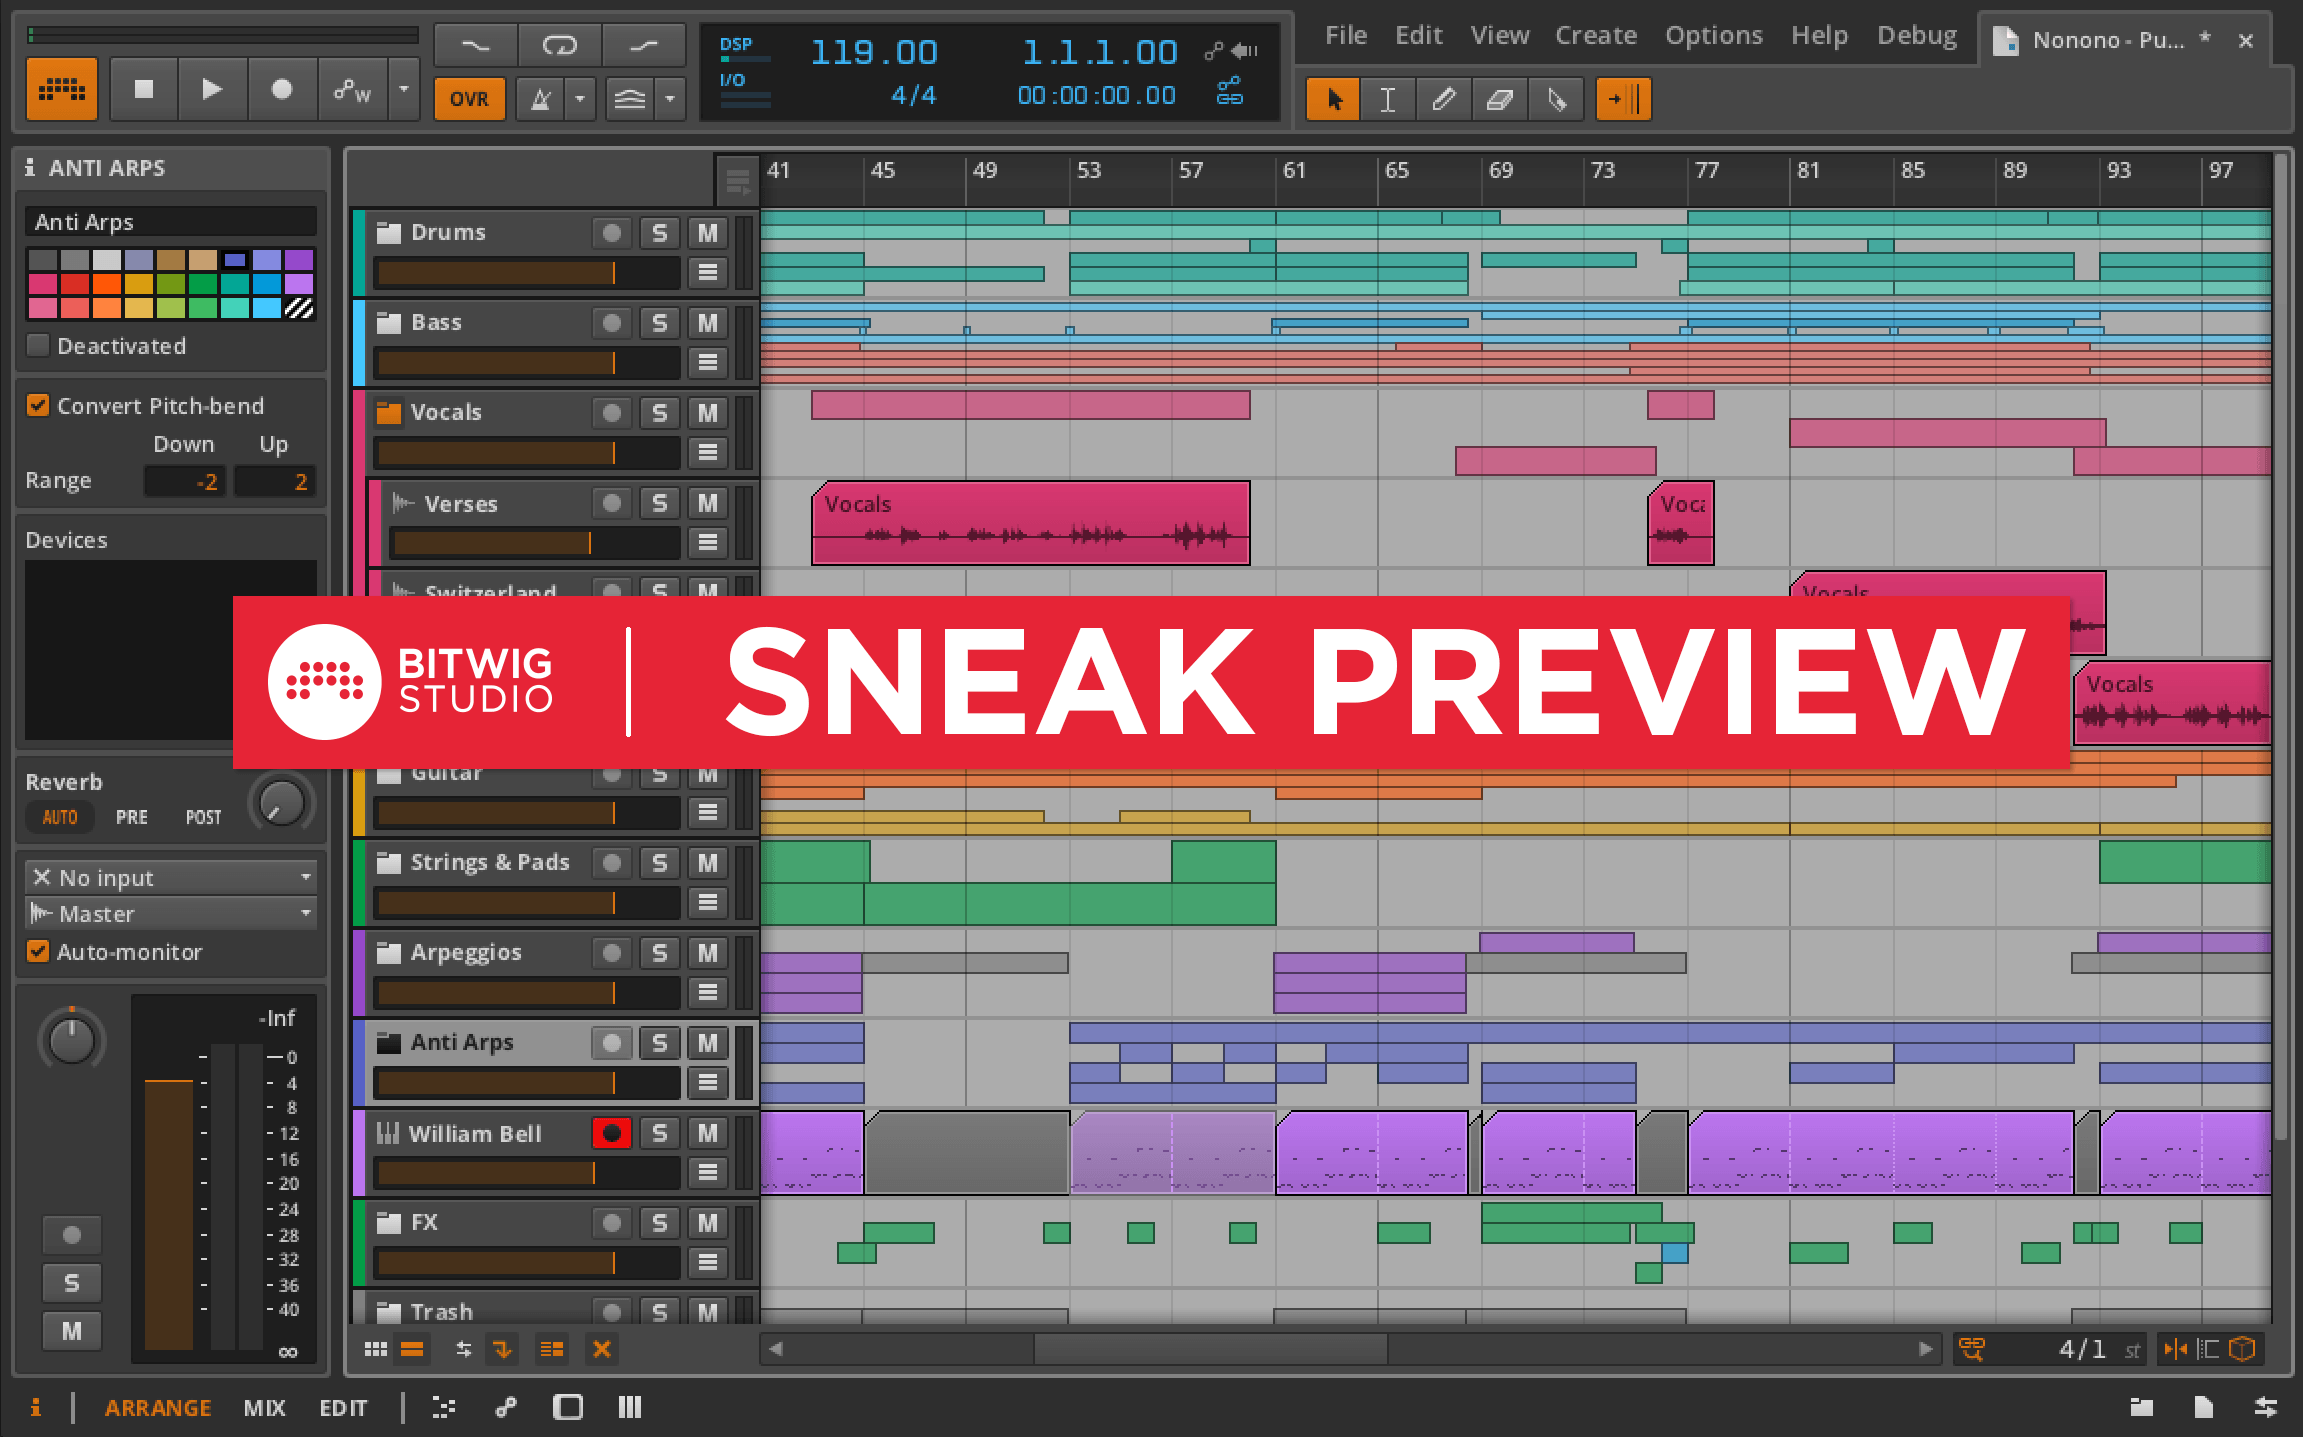 Bitwig Studio 1.2 sneak preview